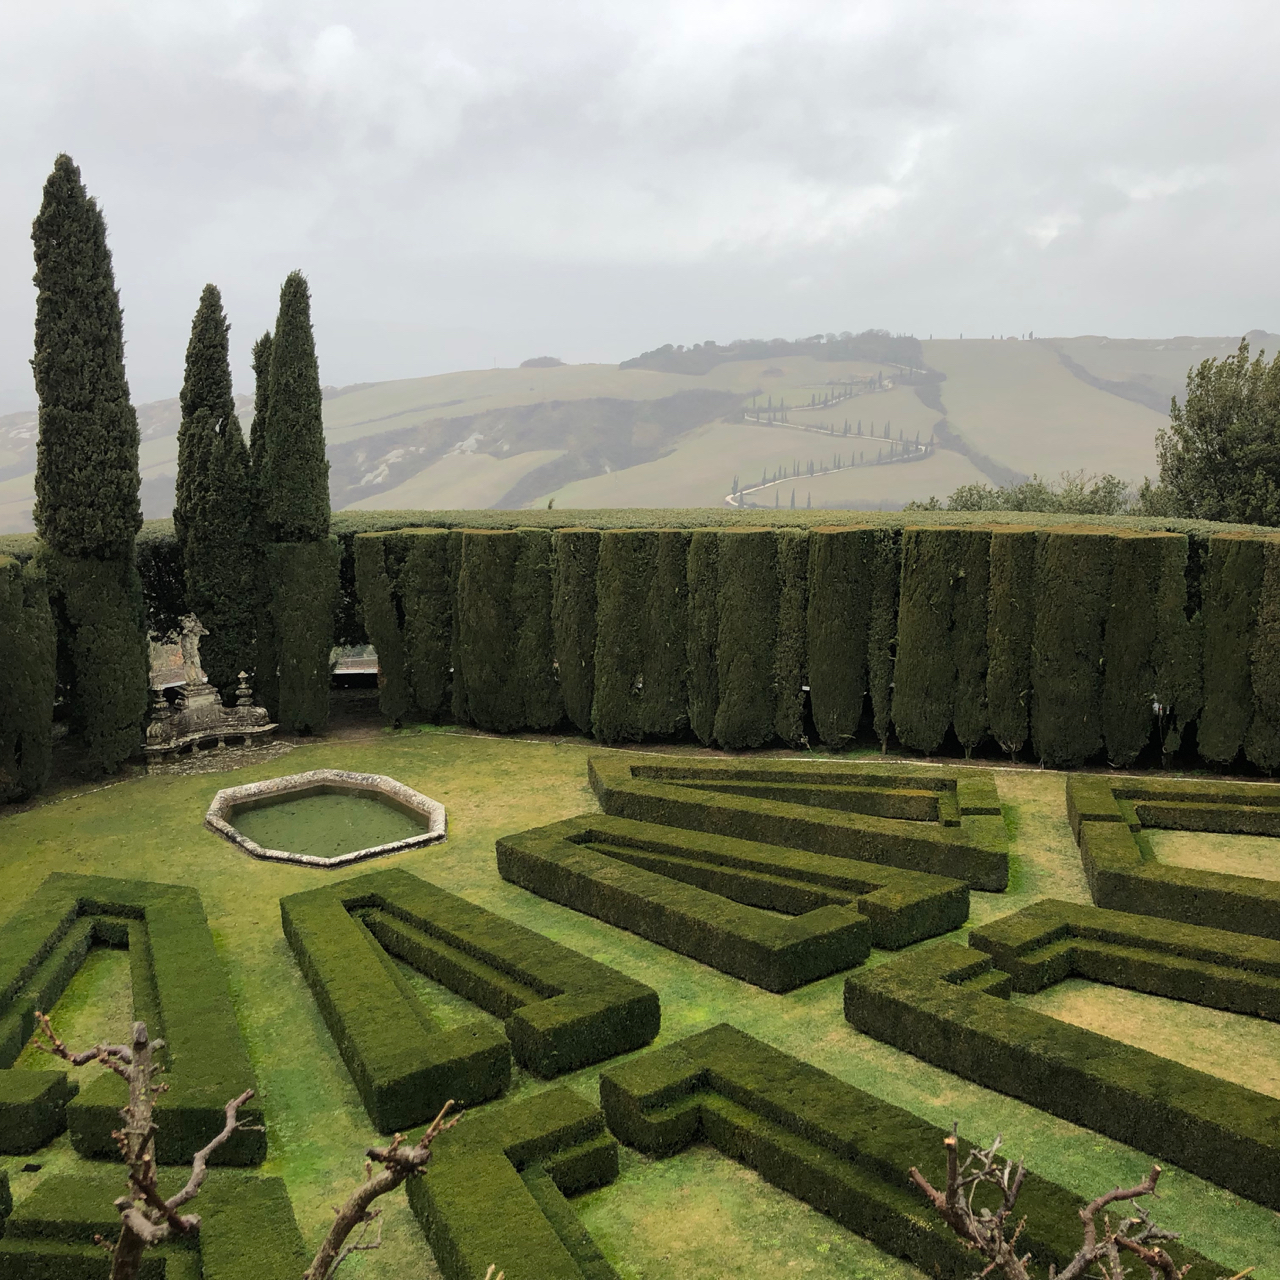 Architecture and Gardens of Tuscany - Coming in 2021